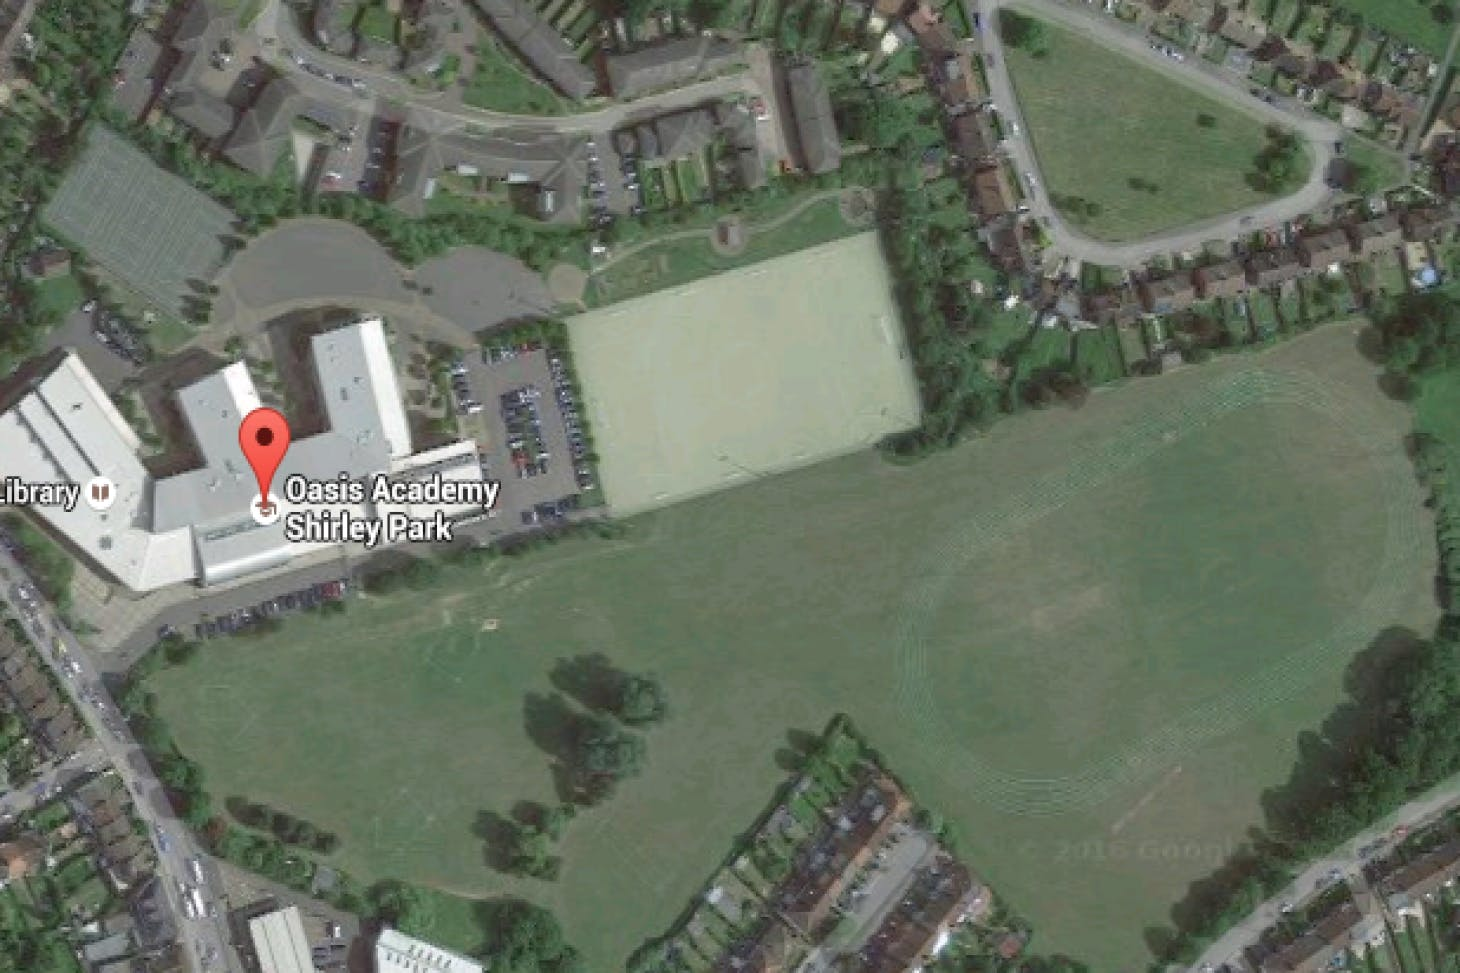 Oasis Shirley Park 11 a side | Astroturf football pitch